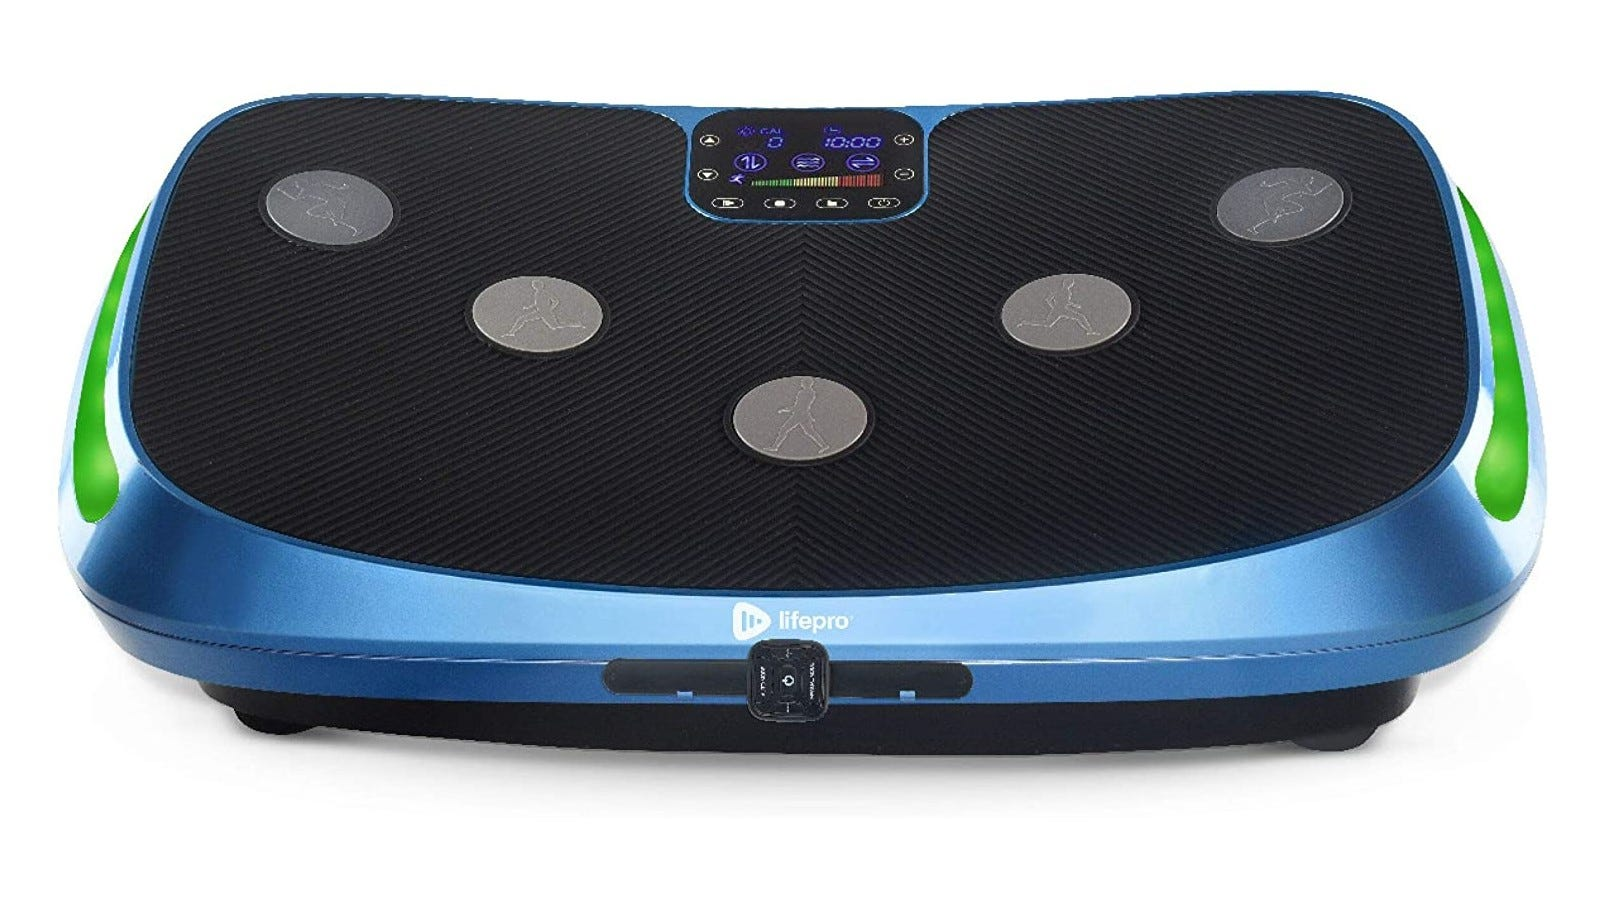 A lifepro vibration plate with five small silver discs on the top and green lights on the side